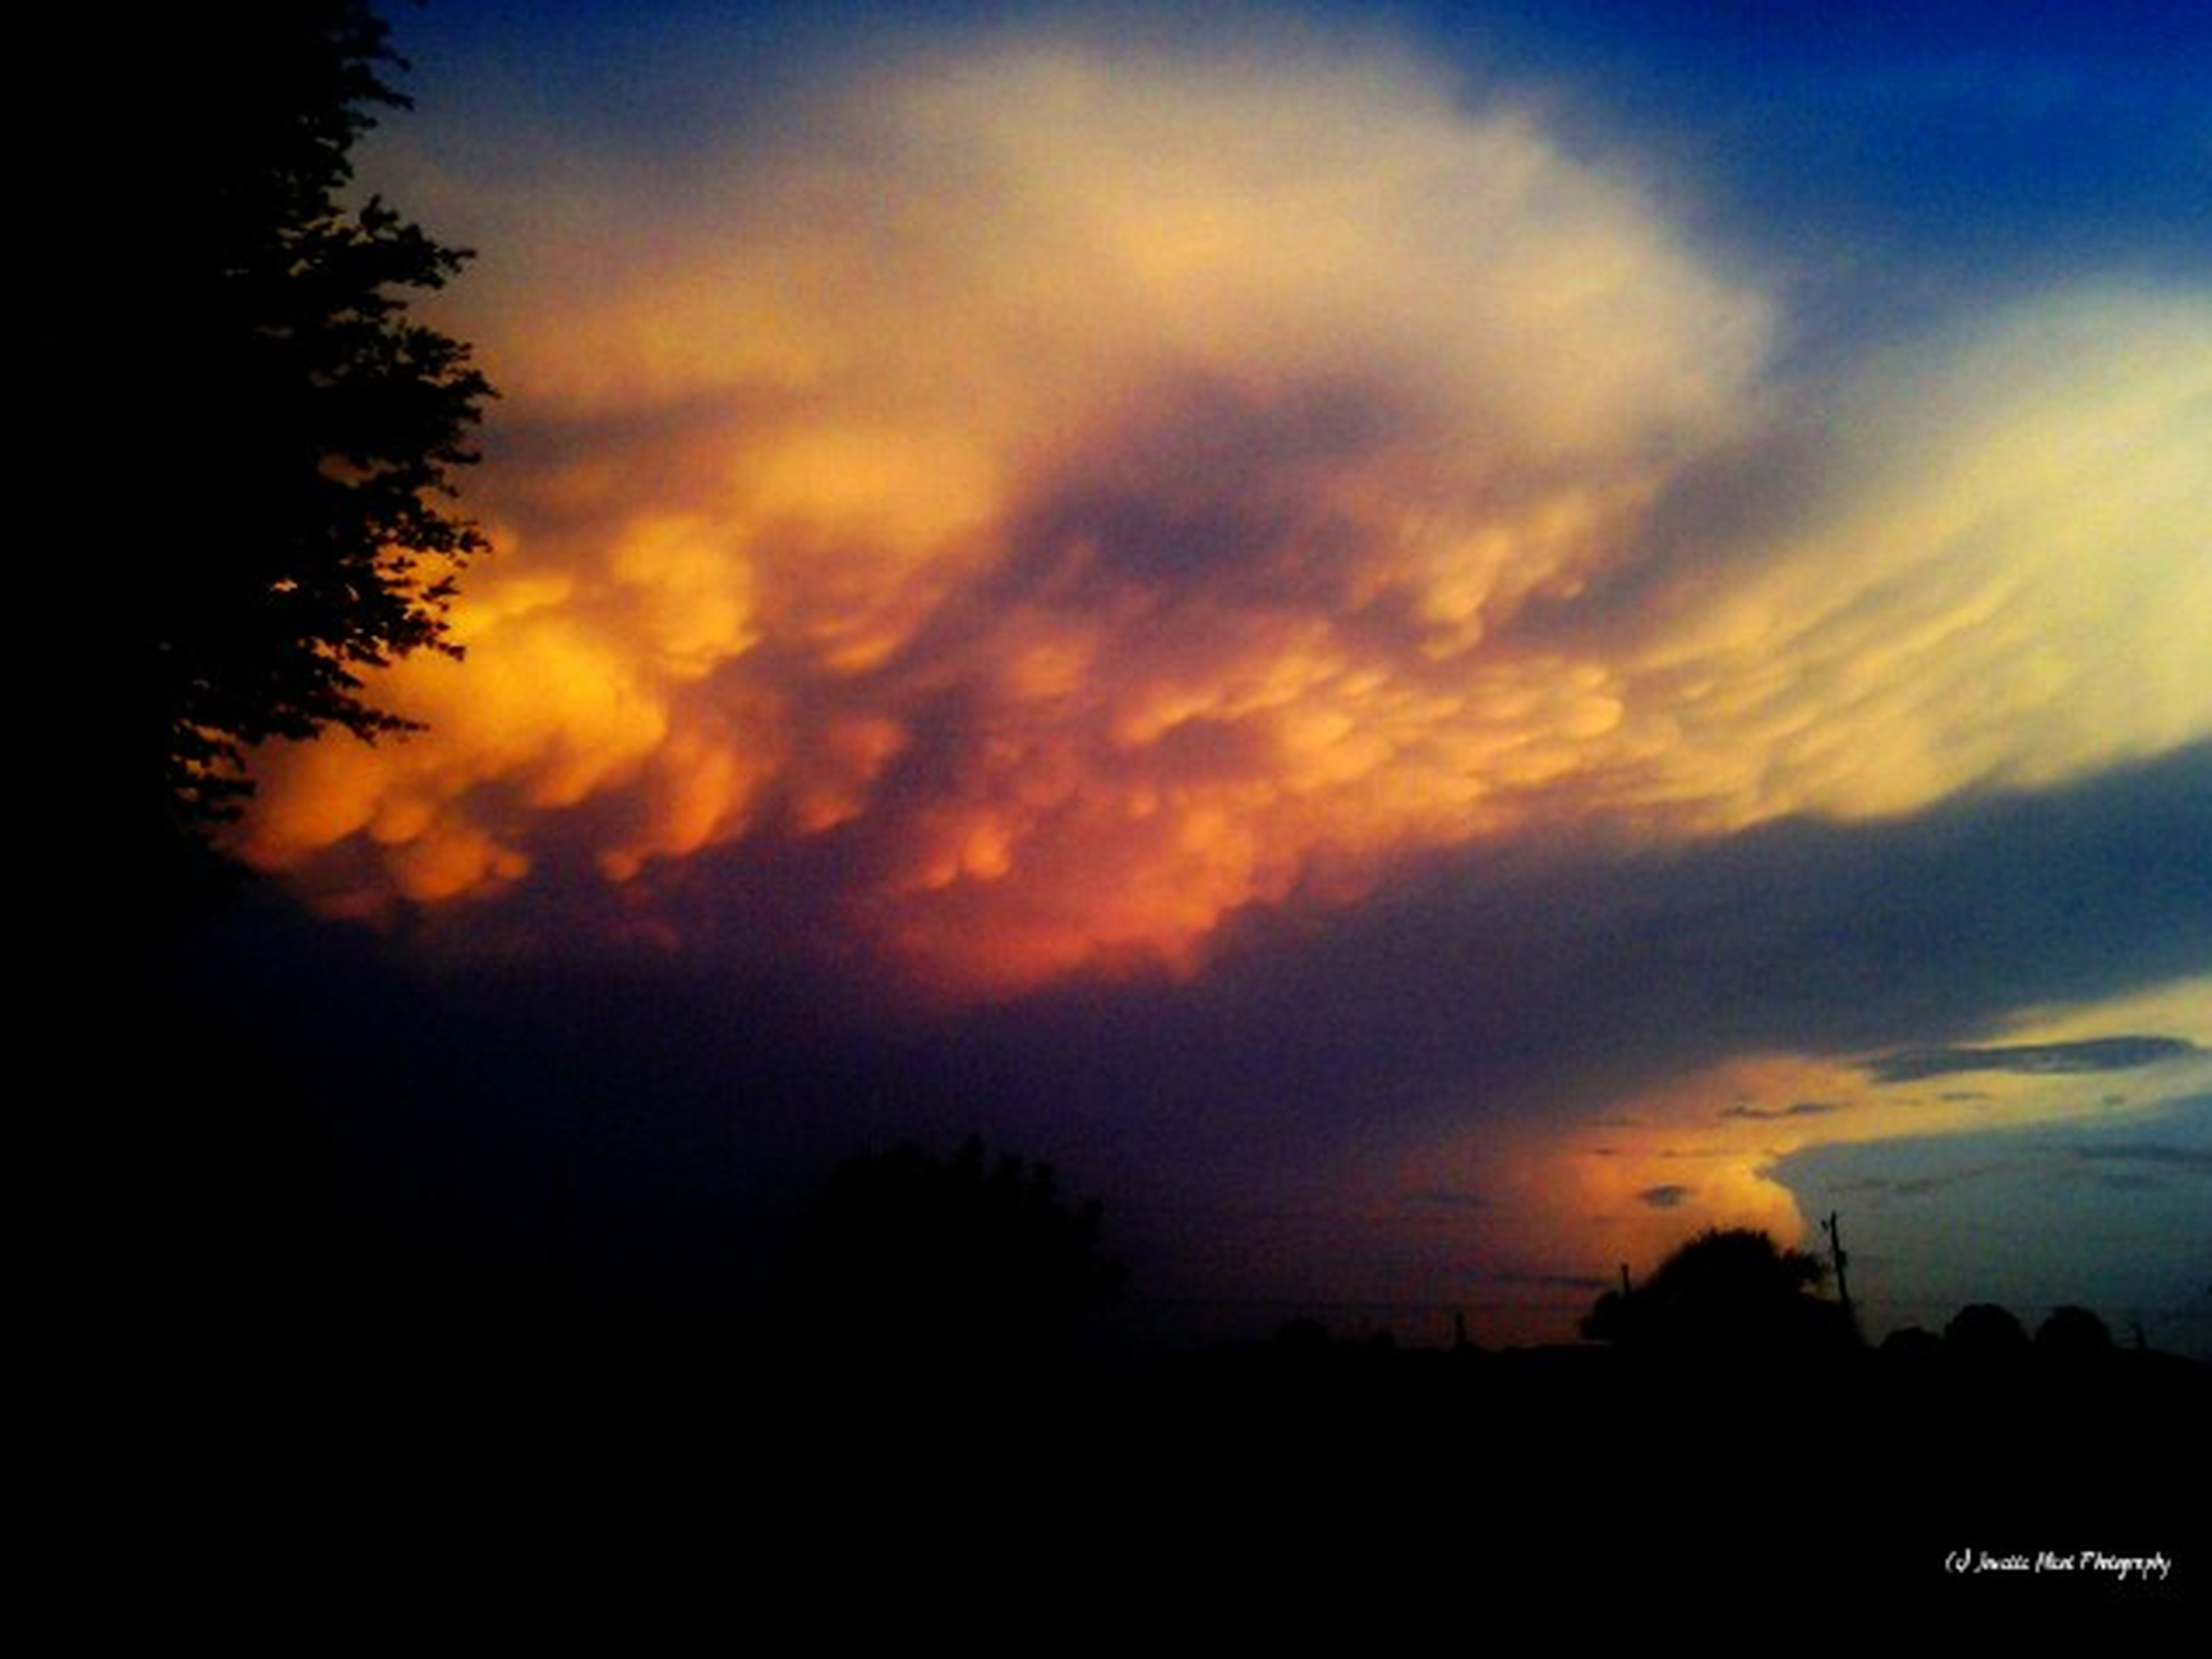 silhouette, sunset, sky, scenics, tree, beauty in nature, tranquility, tranquil scene, cloud - sky, orange color, nature, dramatic sky, dark, idyllic, cloud, landscape, dusk, moody sky, outline, cloudy